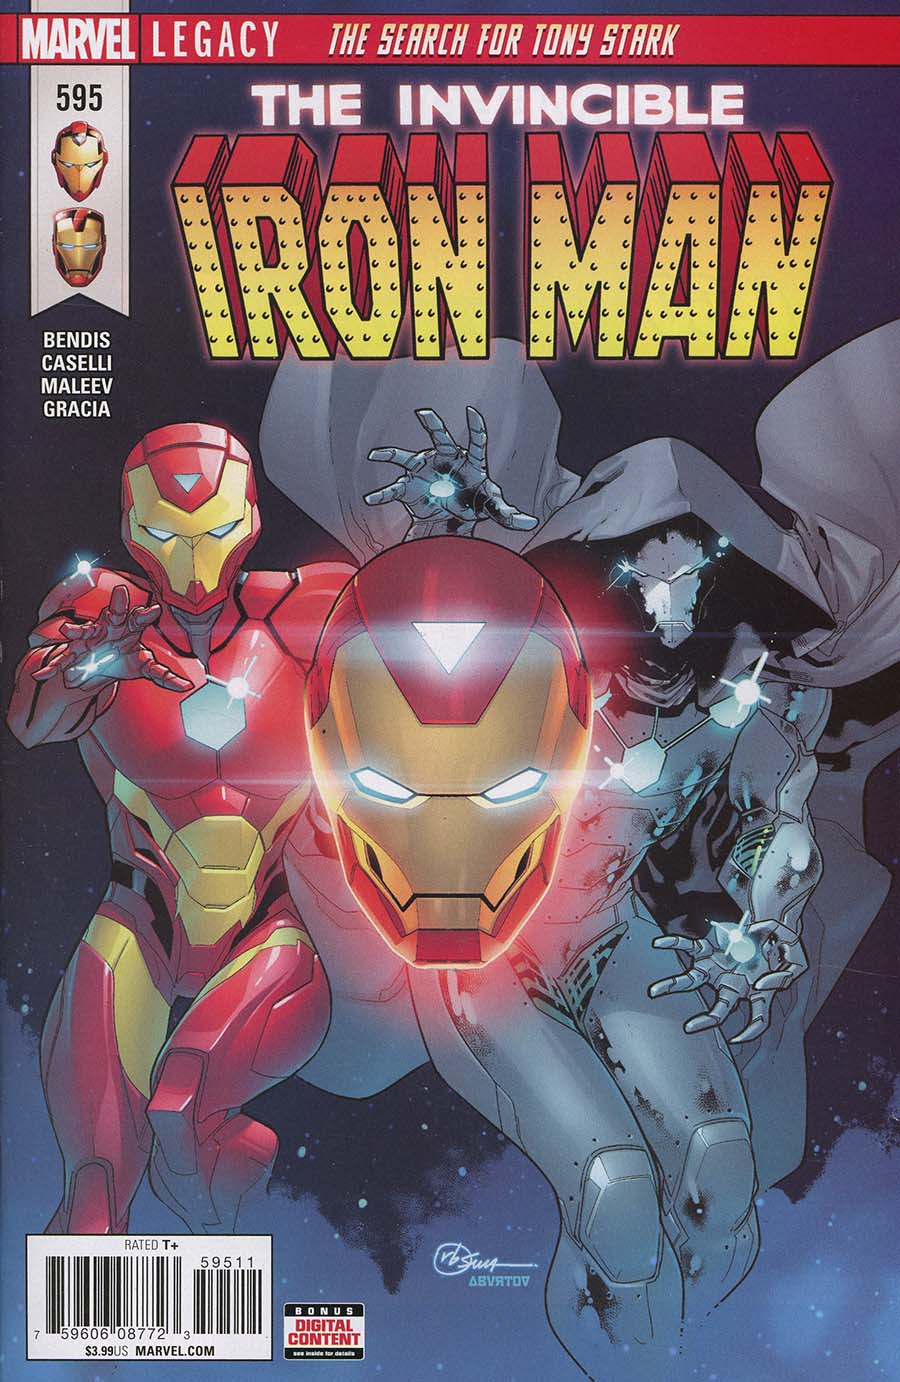 Invincible Iron Man Vol 3 #595 (Marvel Legacy Tie-In)